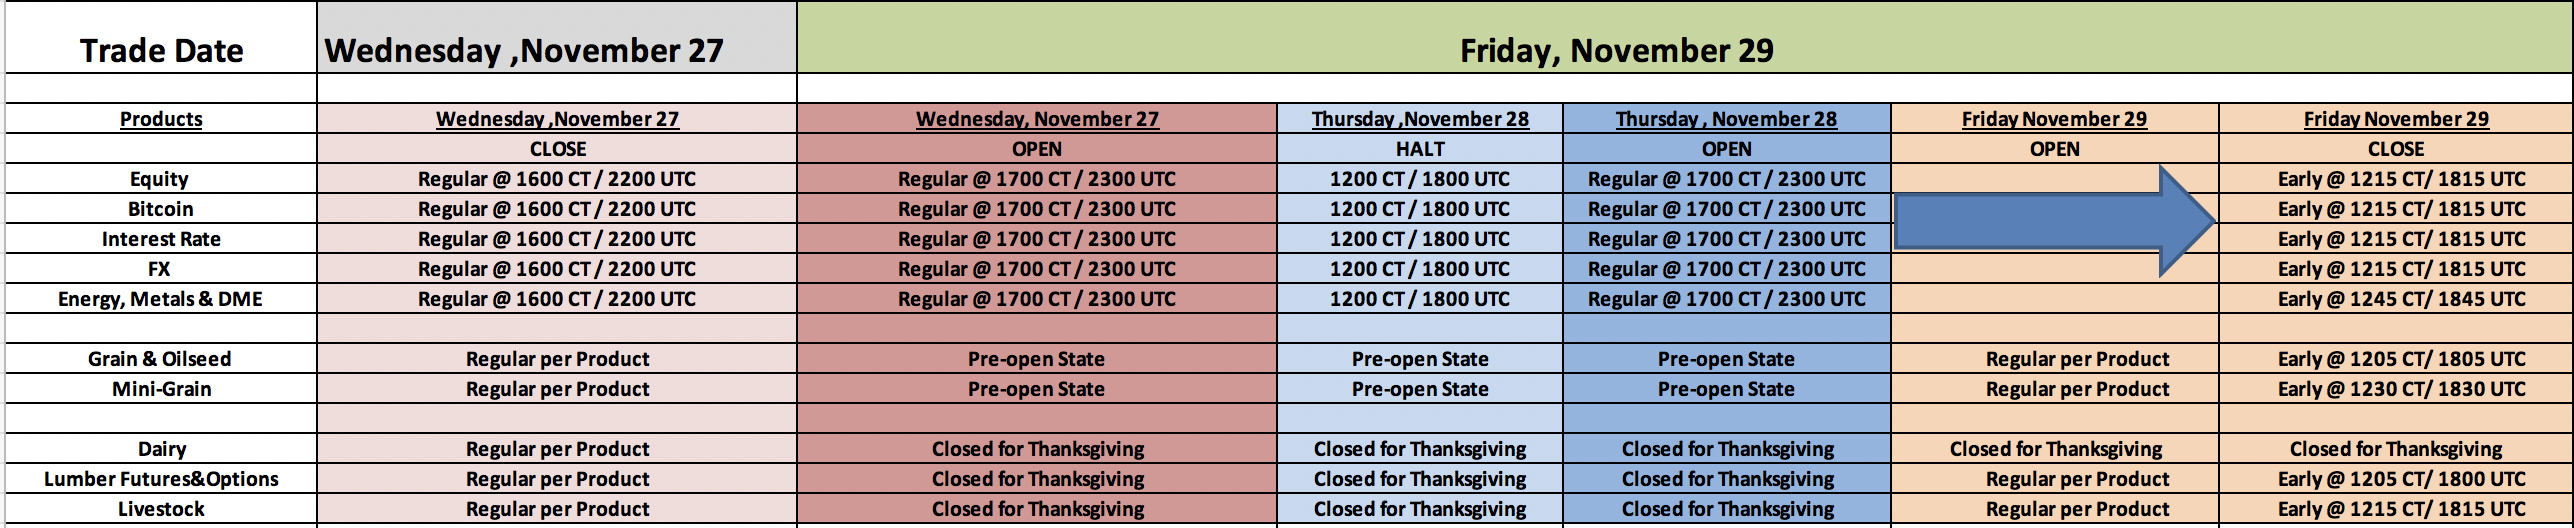 CME Group Globex - Thanksgiving Holiday Schedule - November 27 -29, 2019